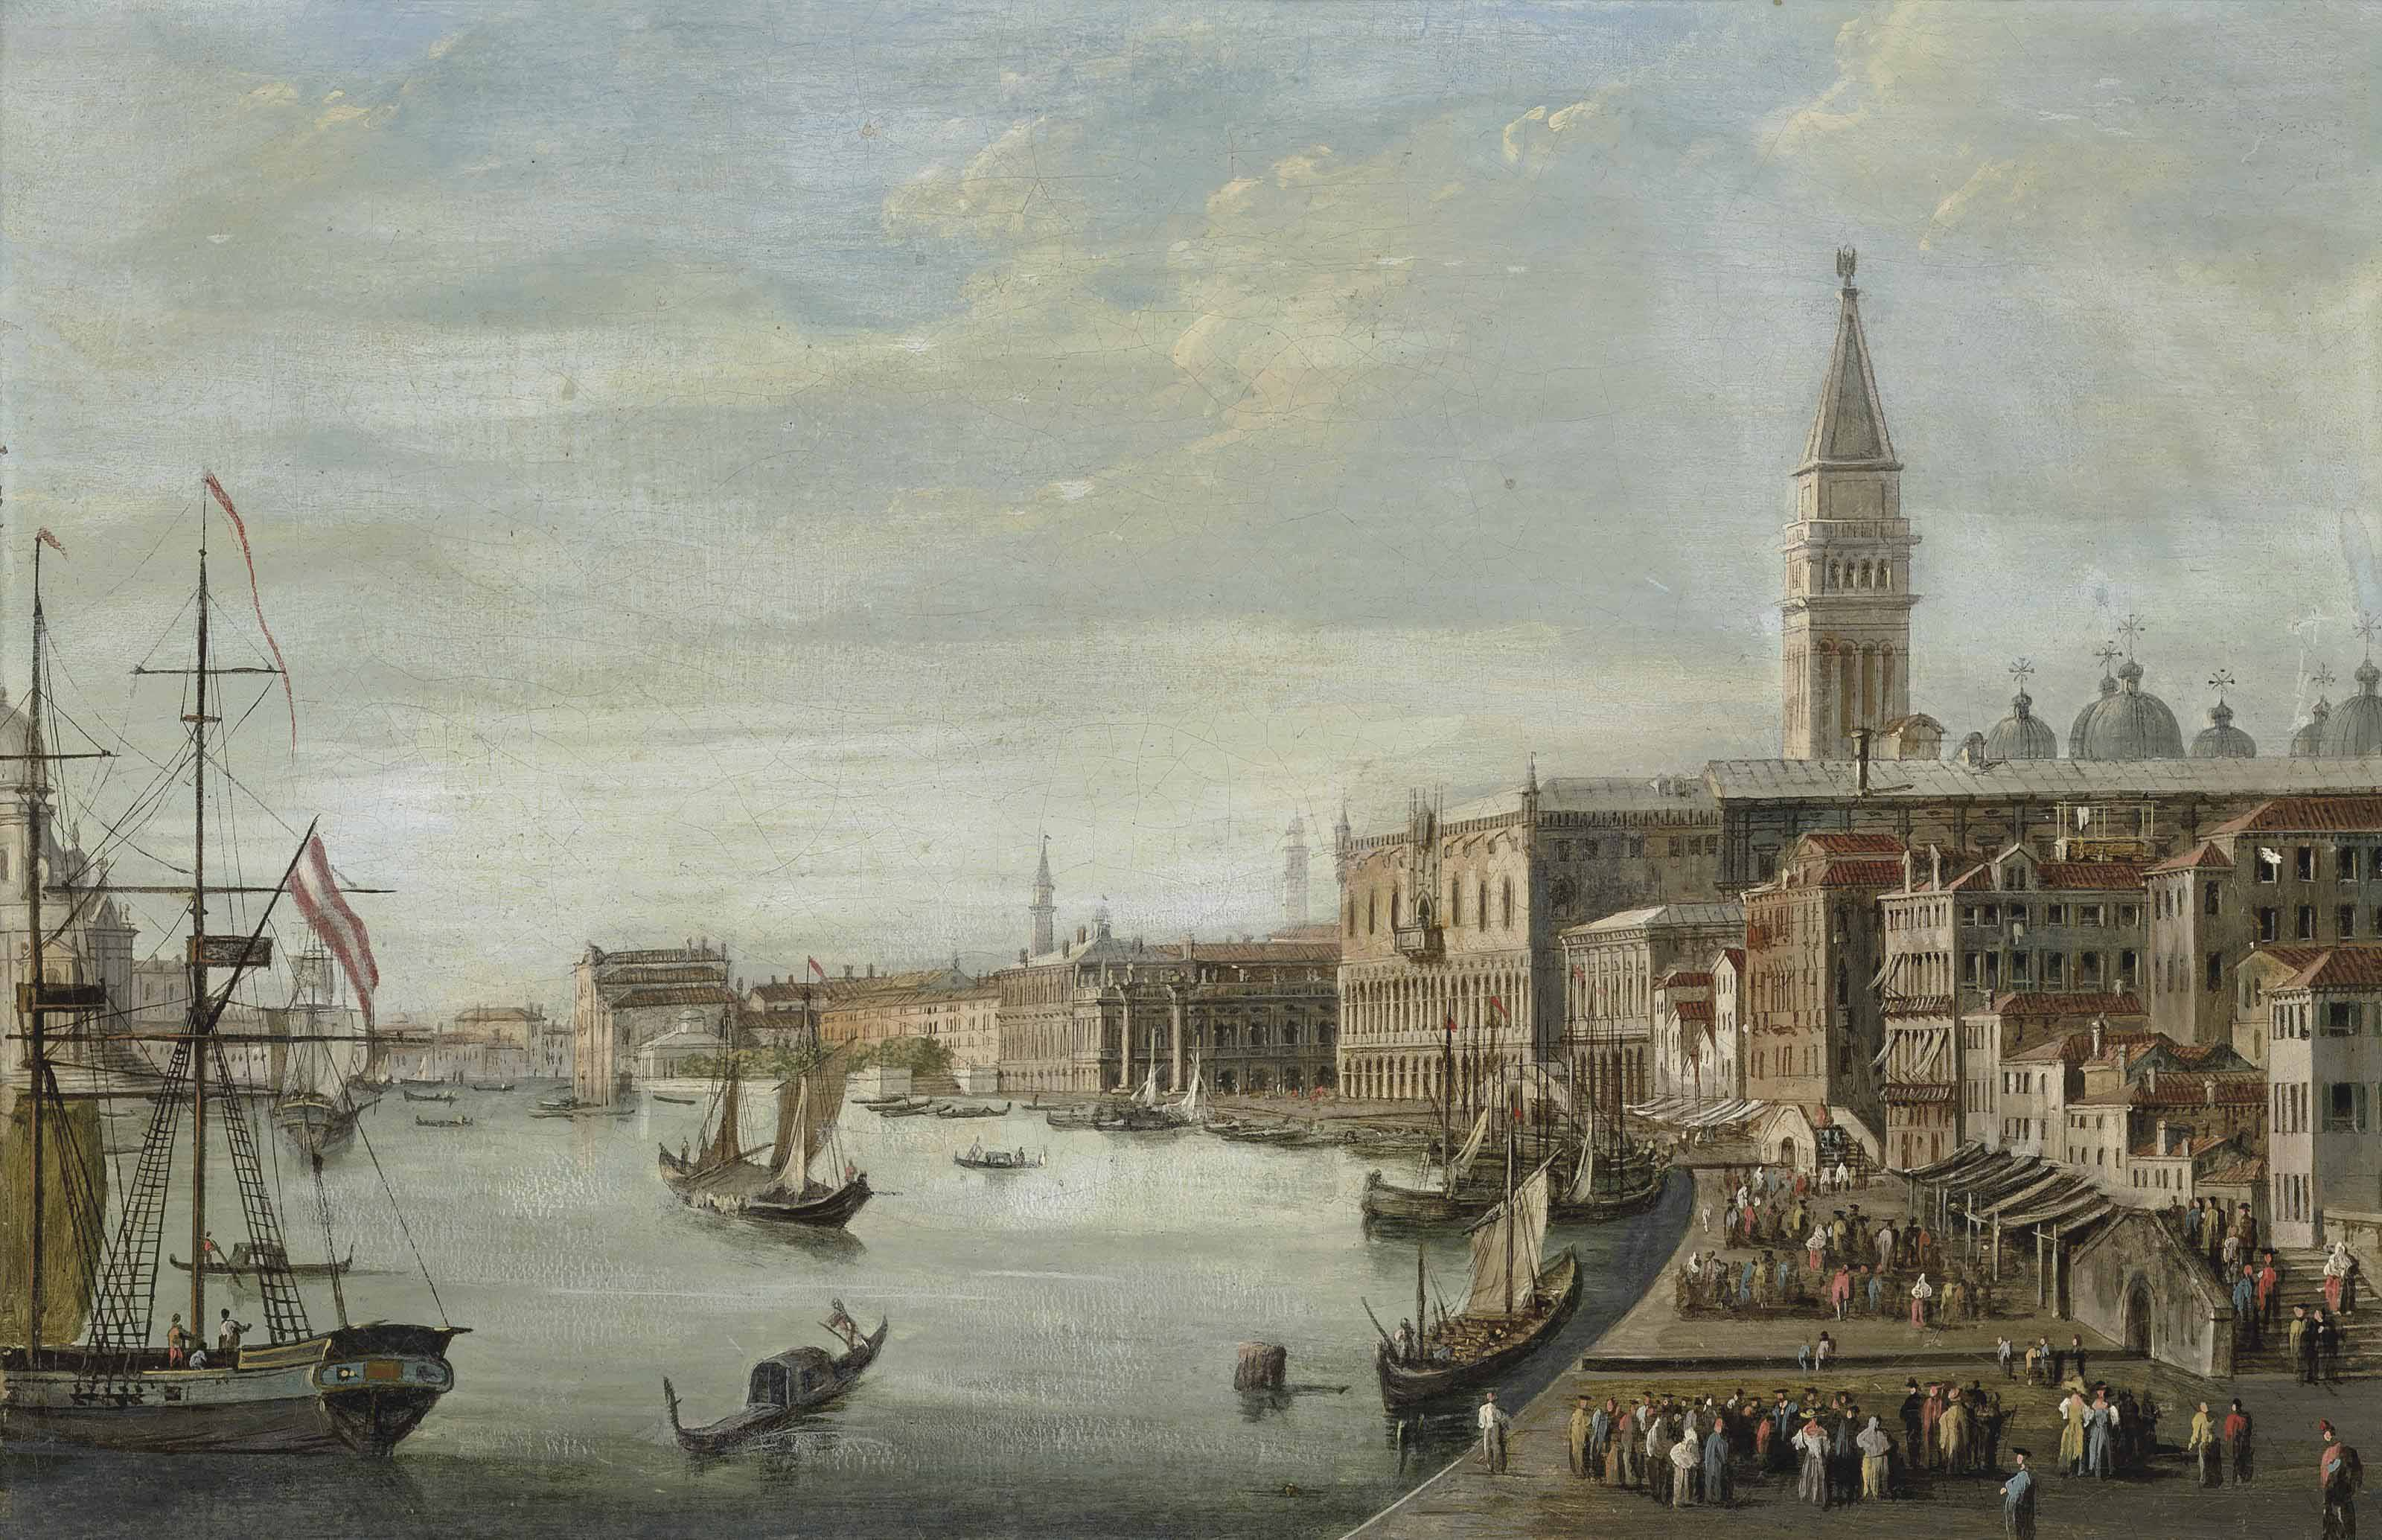 The Doge's Palace with the Campanile, the Libreria Marciana and Santa Maria della Salute beyond